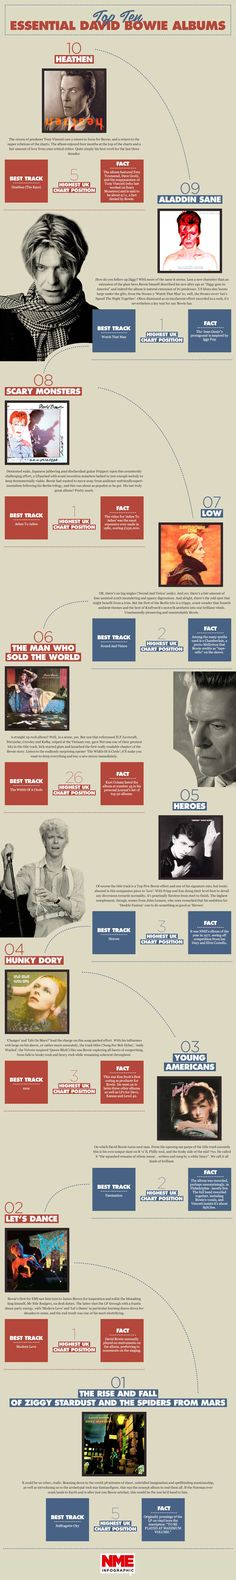 The Top Ten Essential David Bowie Albums - NME Infographics